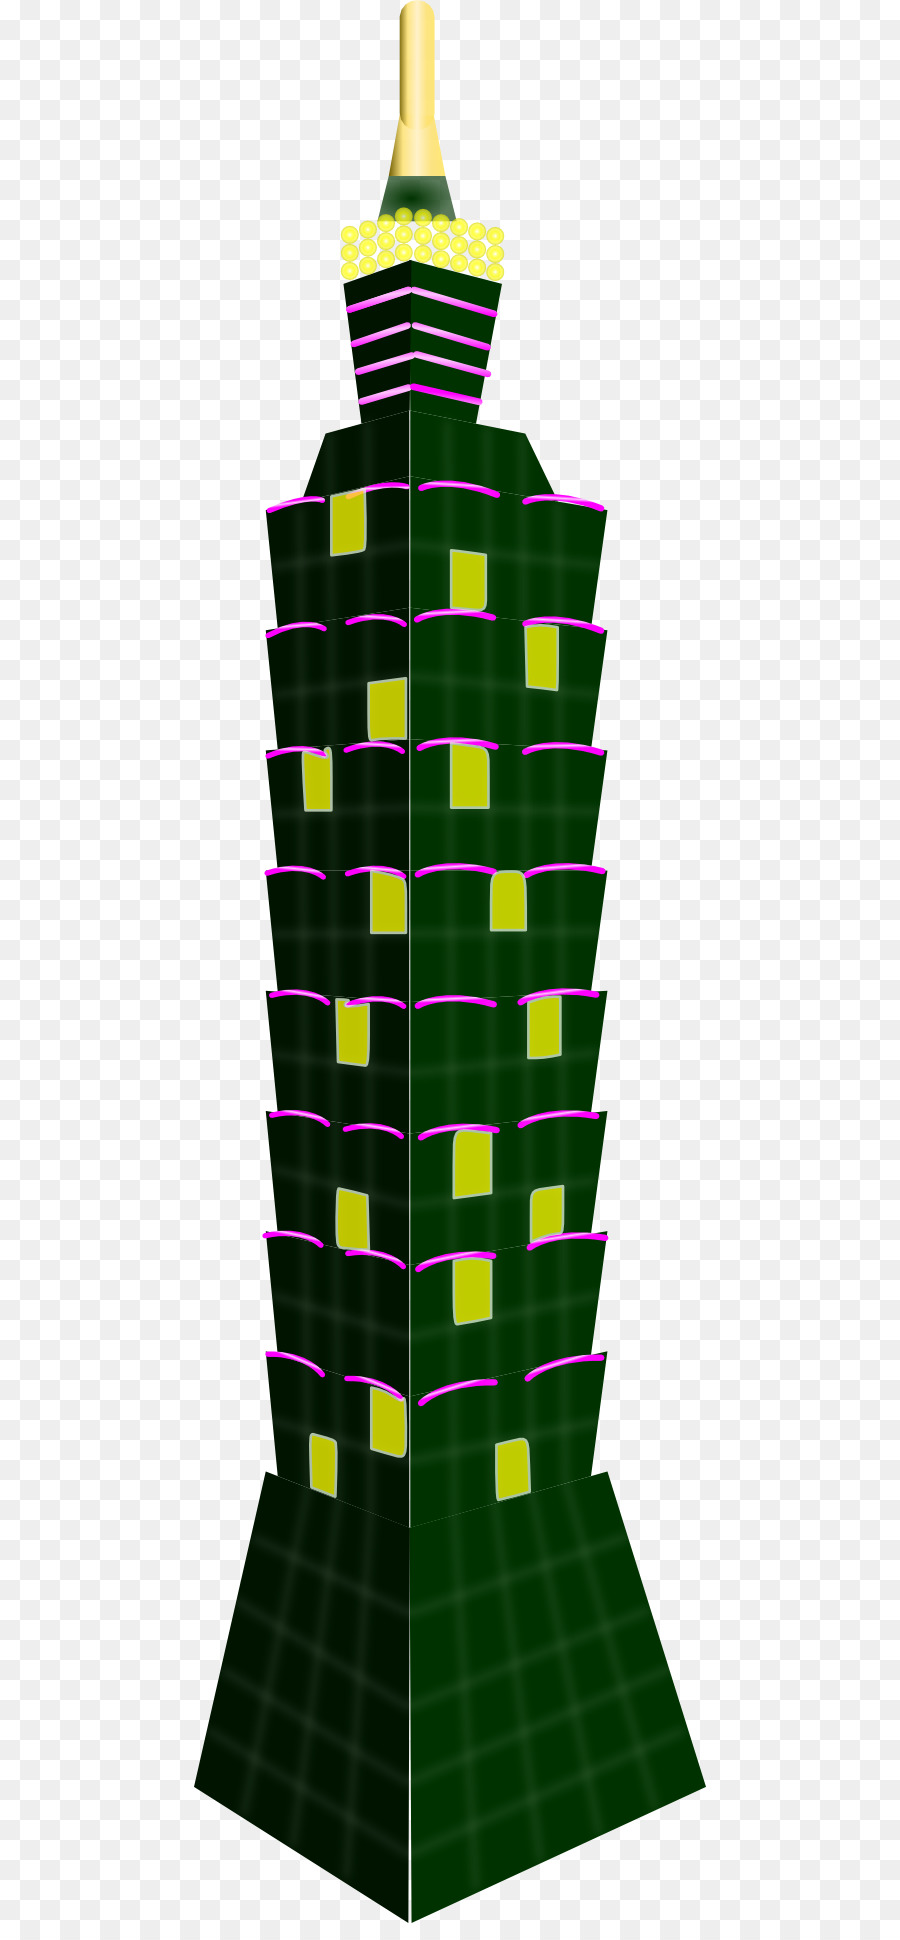 Taipei 101 clipart picture freeuse stock Green City Drawing png download - 512*1923 - Free ... picture freeuse stock